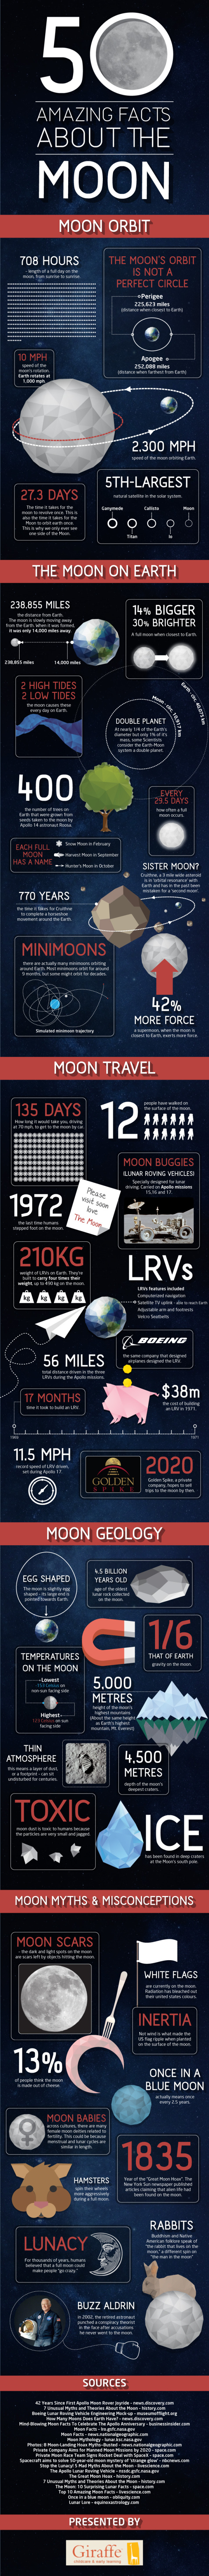 50 Amazing Facts About the Moon infographic